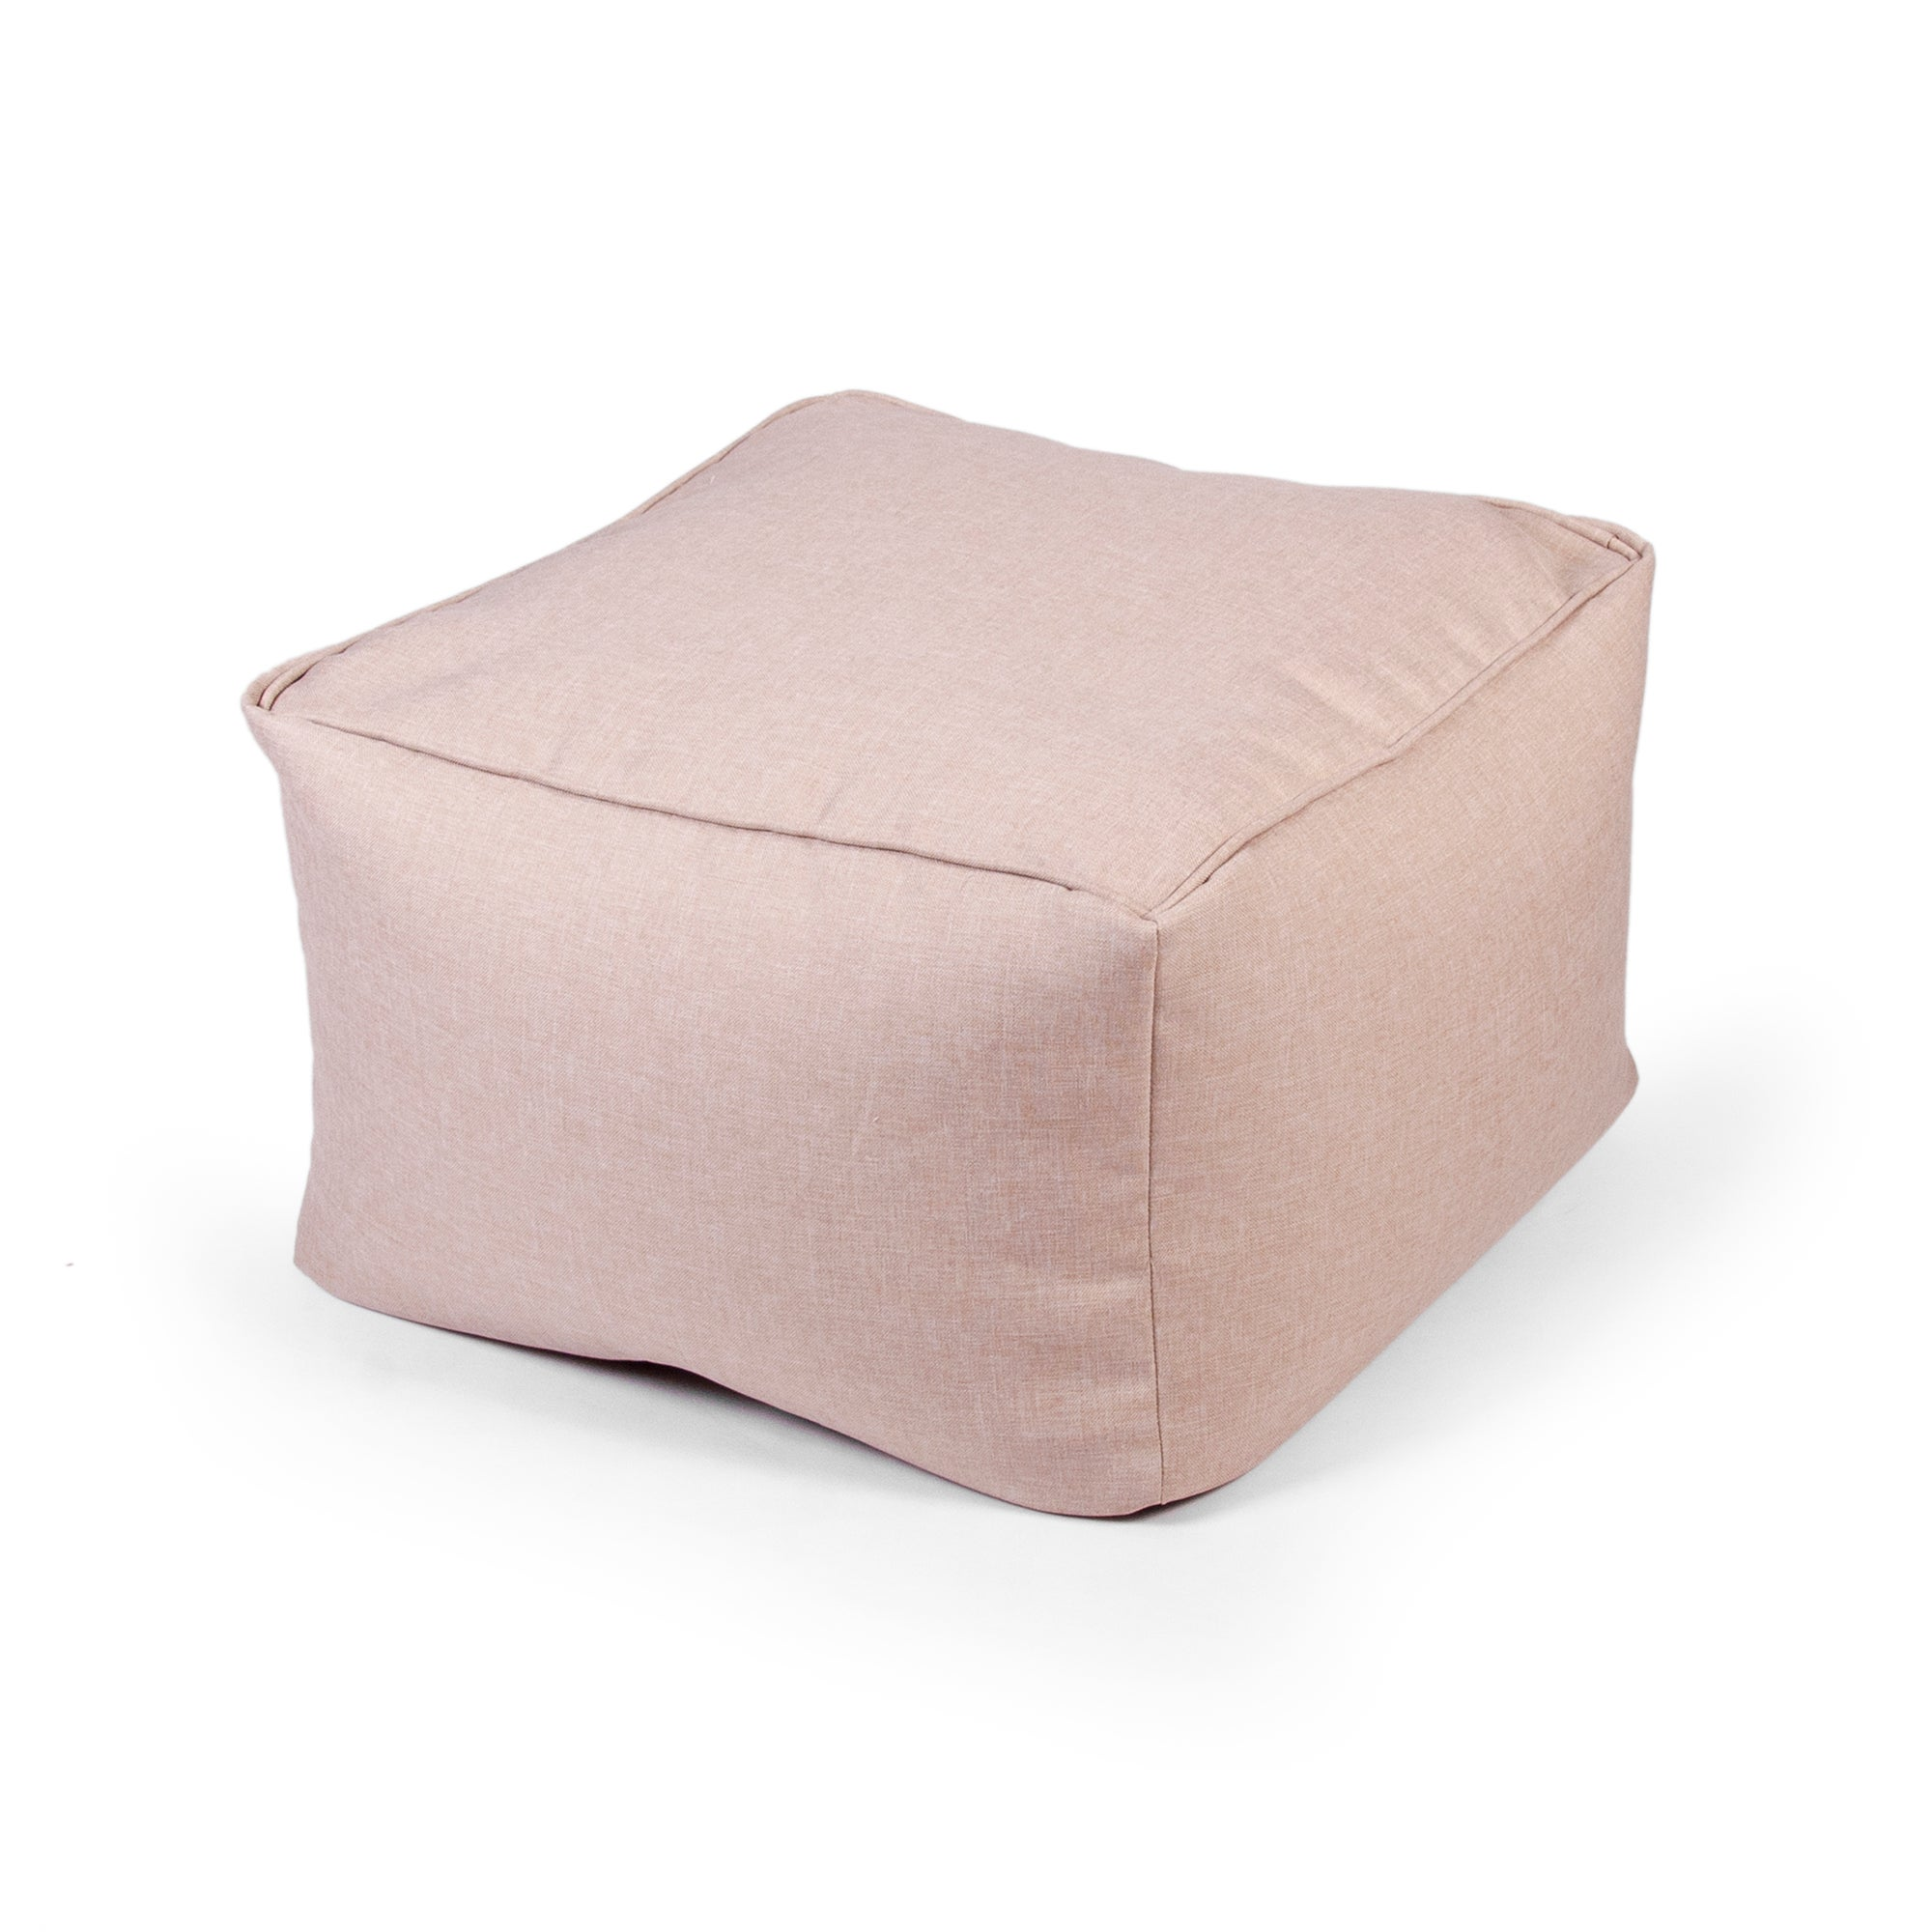 Beige Ashby Square Slab Bean Bag